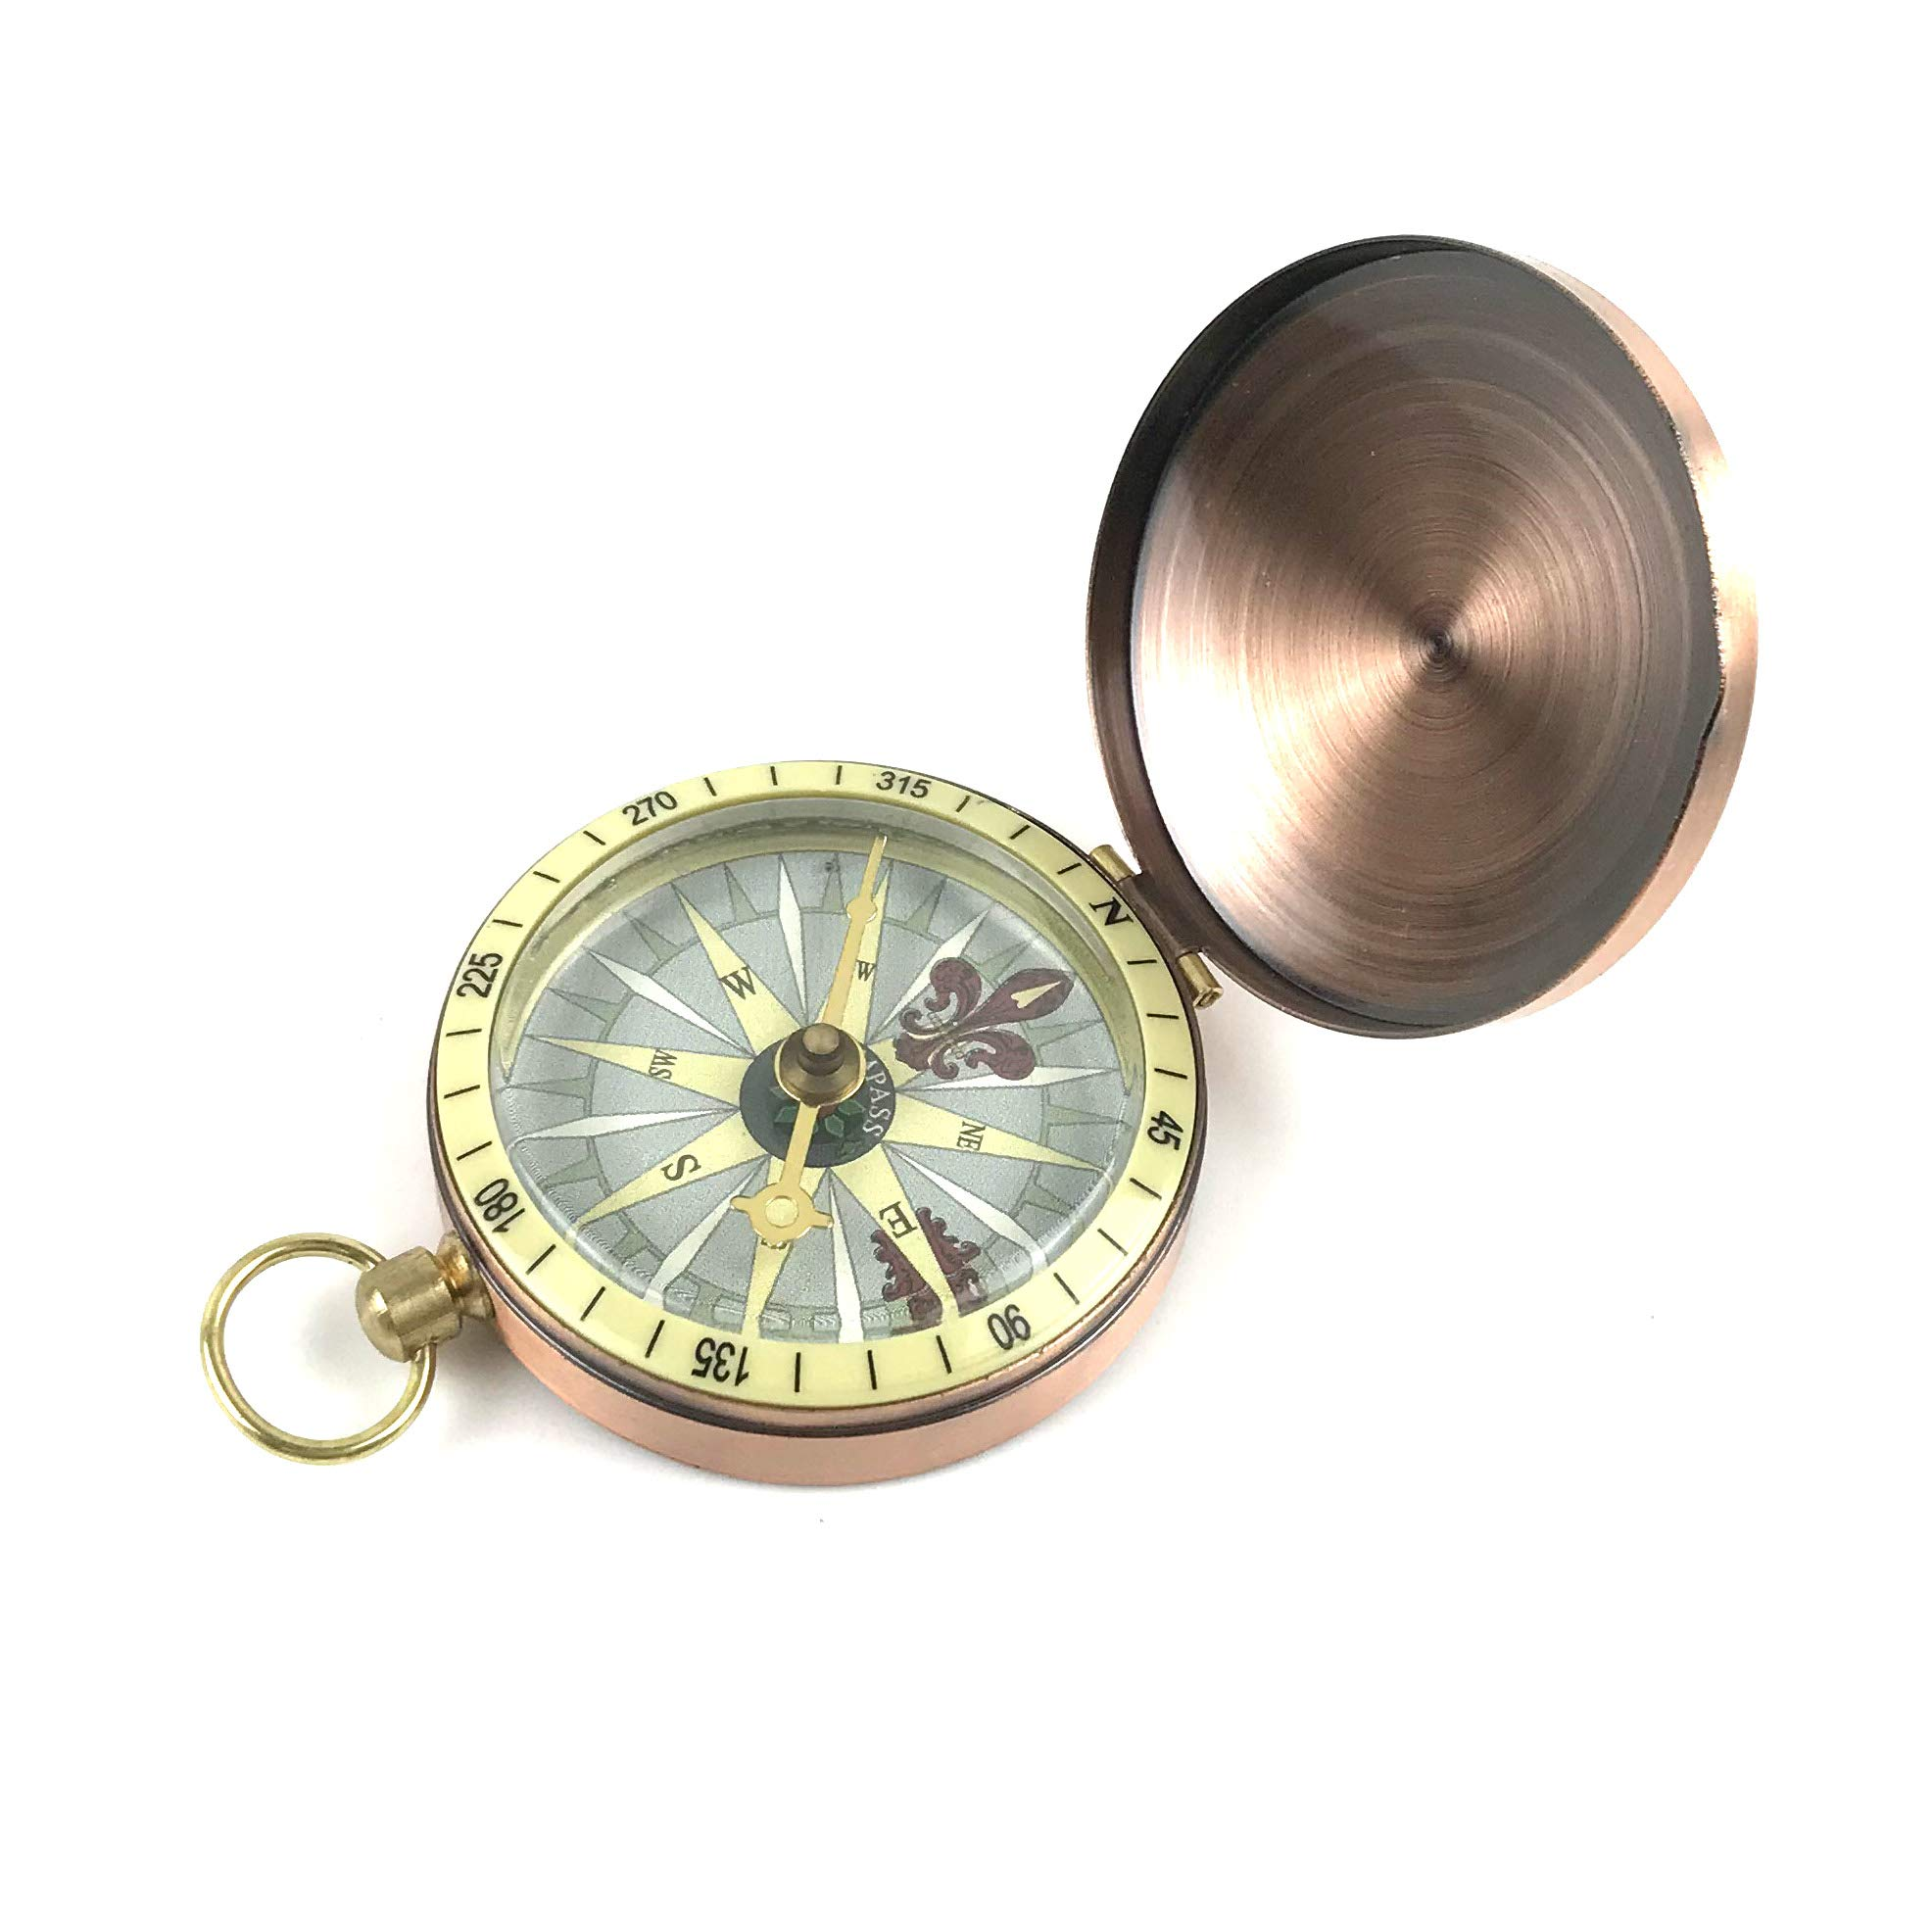 DETUCK(TM Survival Pocket Compass for Camping Hiking Boating | Vintage Copper Brass Compass Tool | Charm Navigation Antique Compass Nautical Marine Pocket Compass Gift